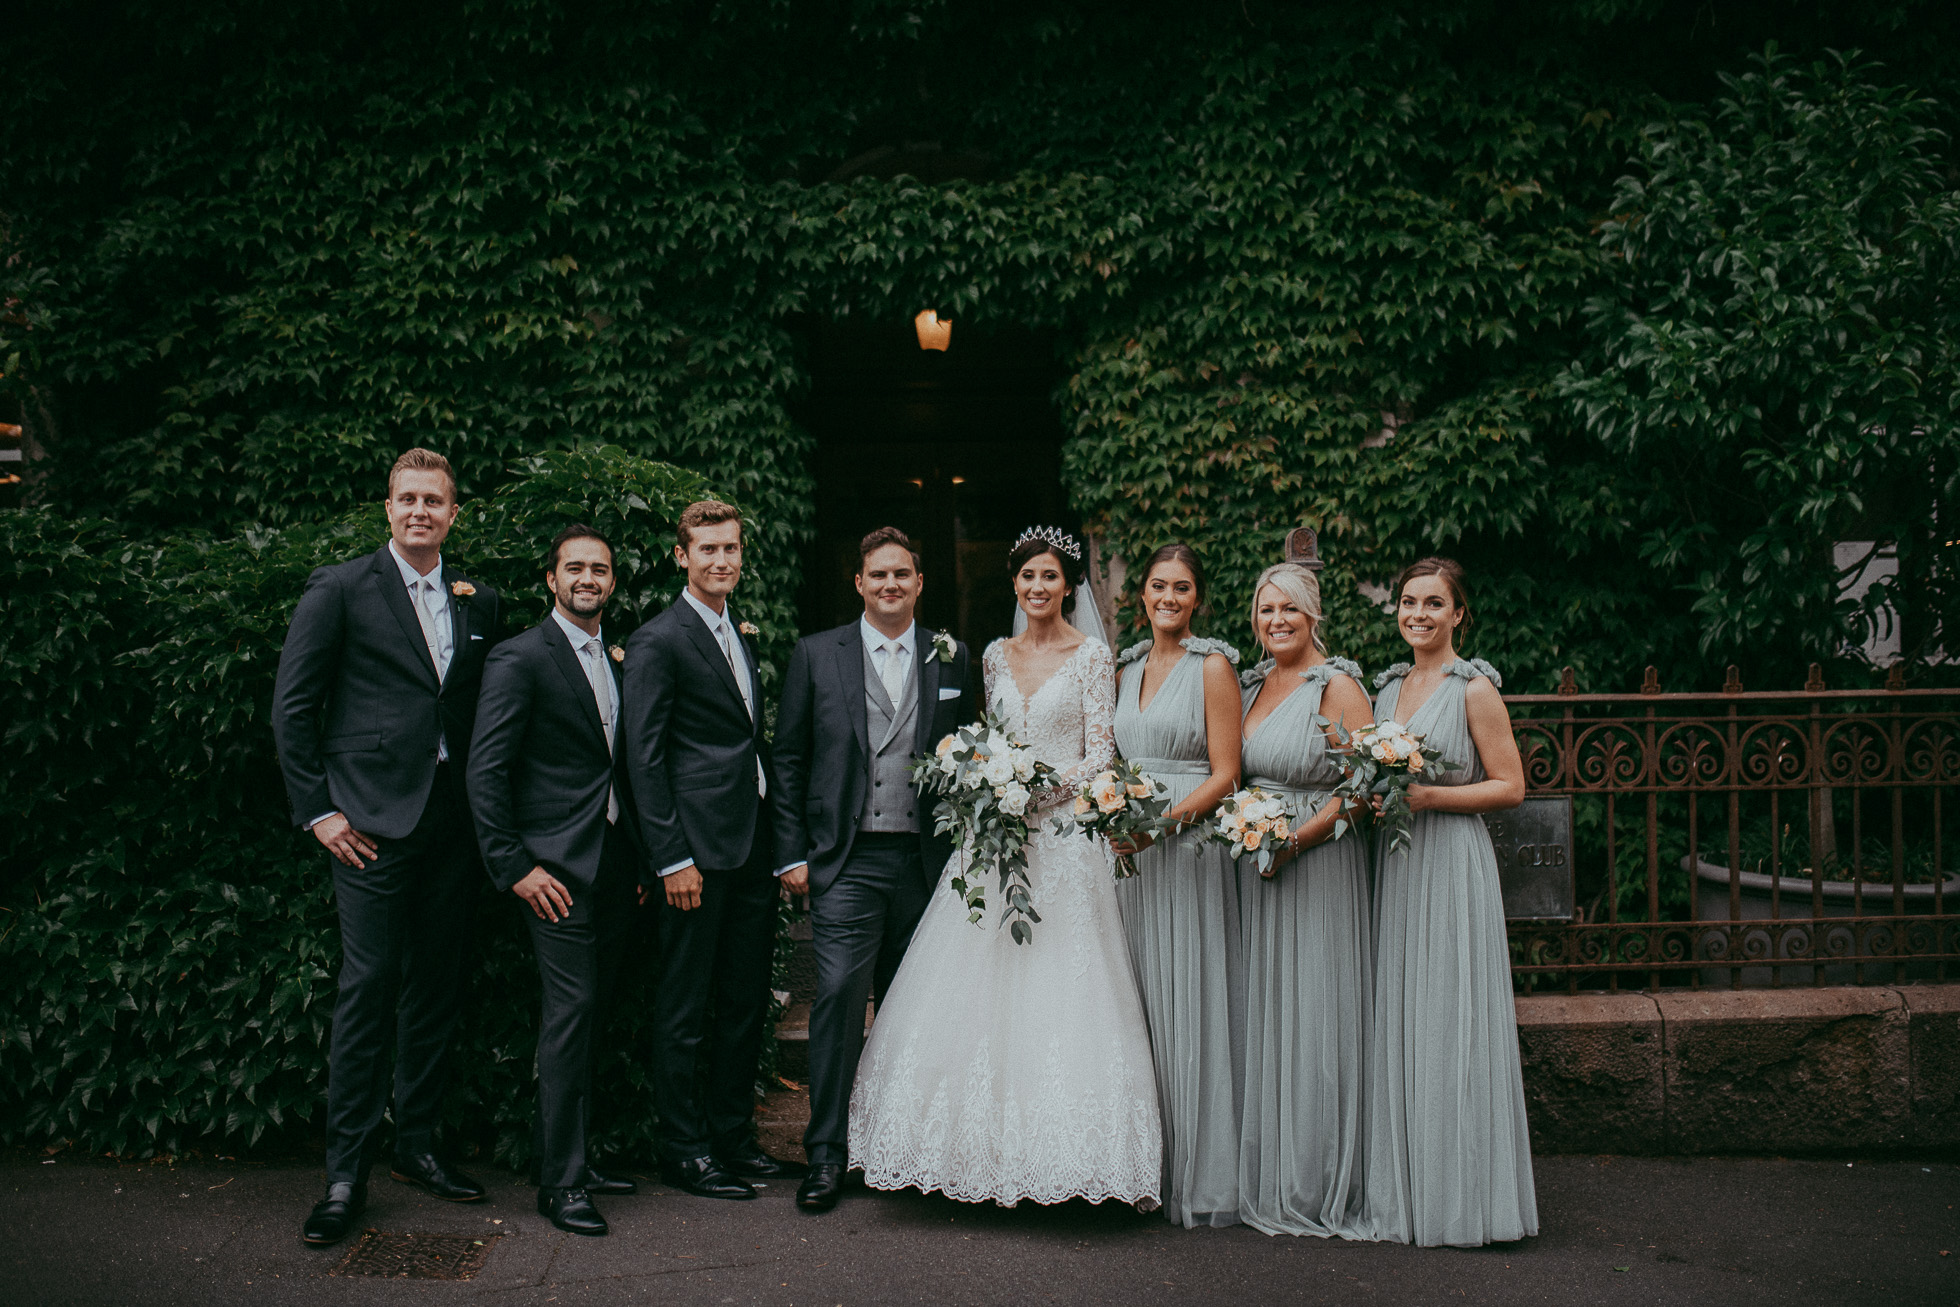 wedding-by-levien-520.JPG